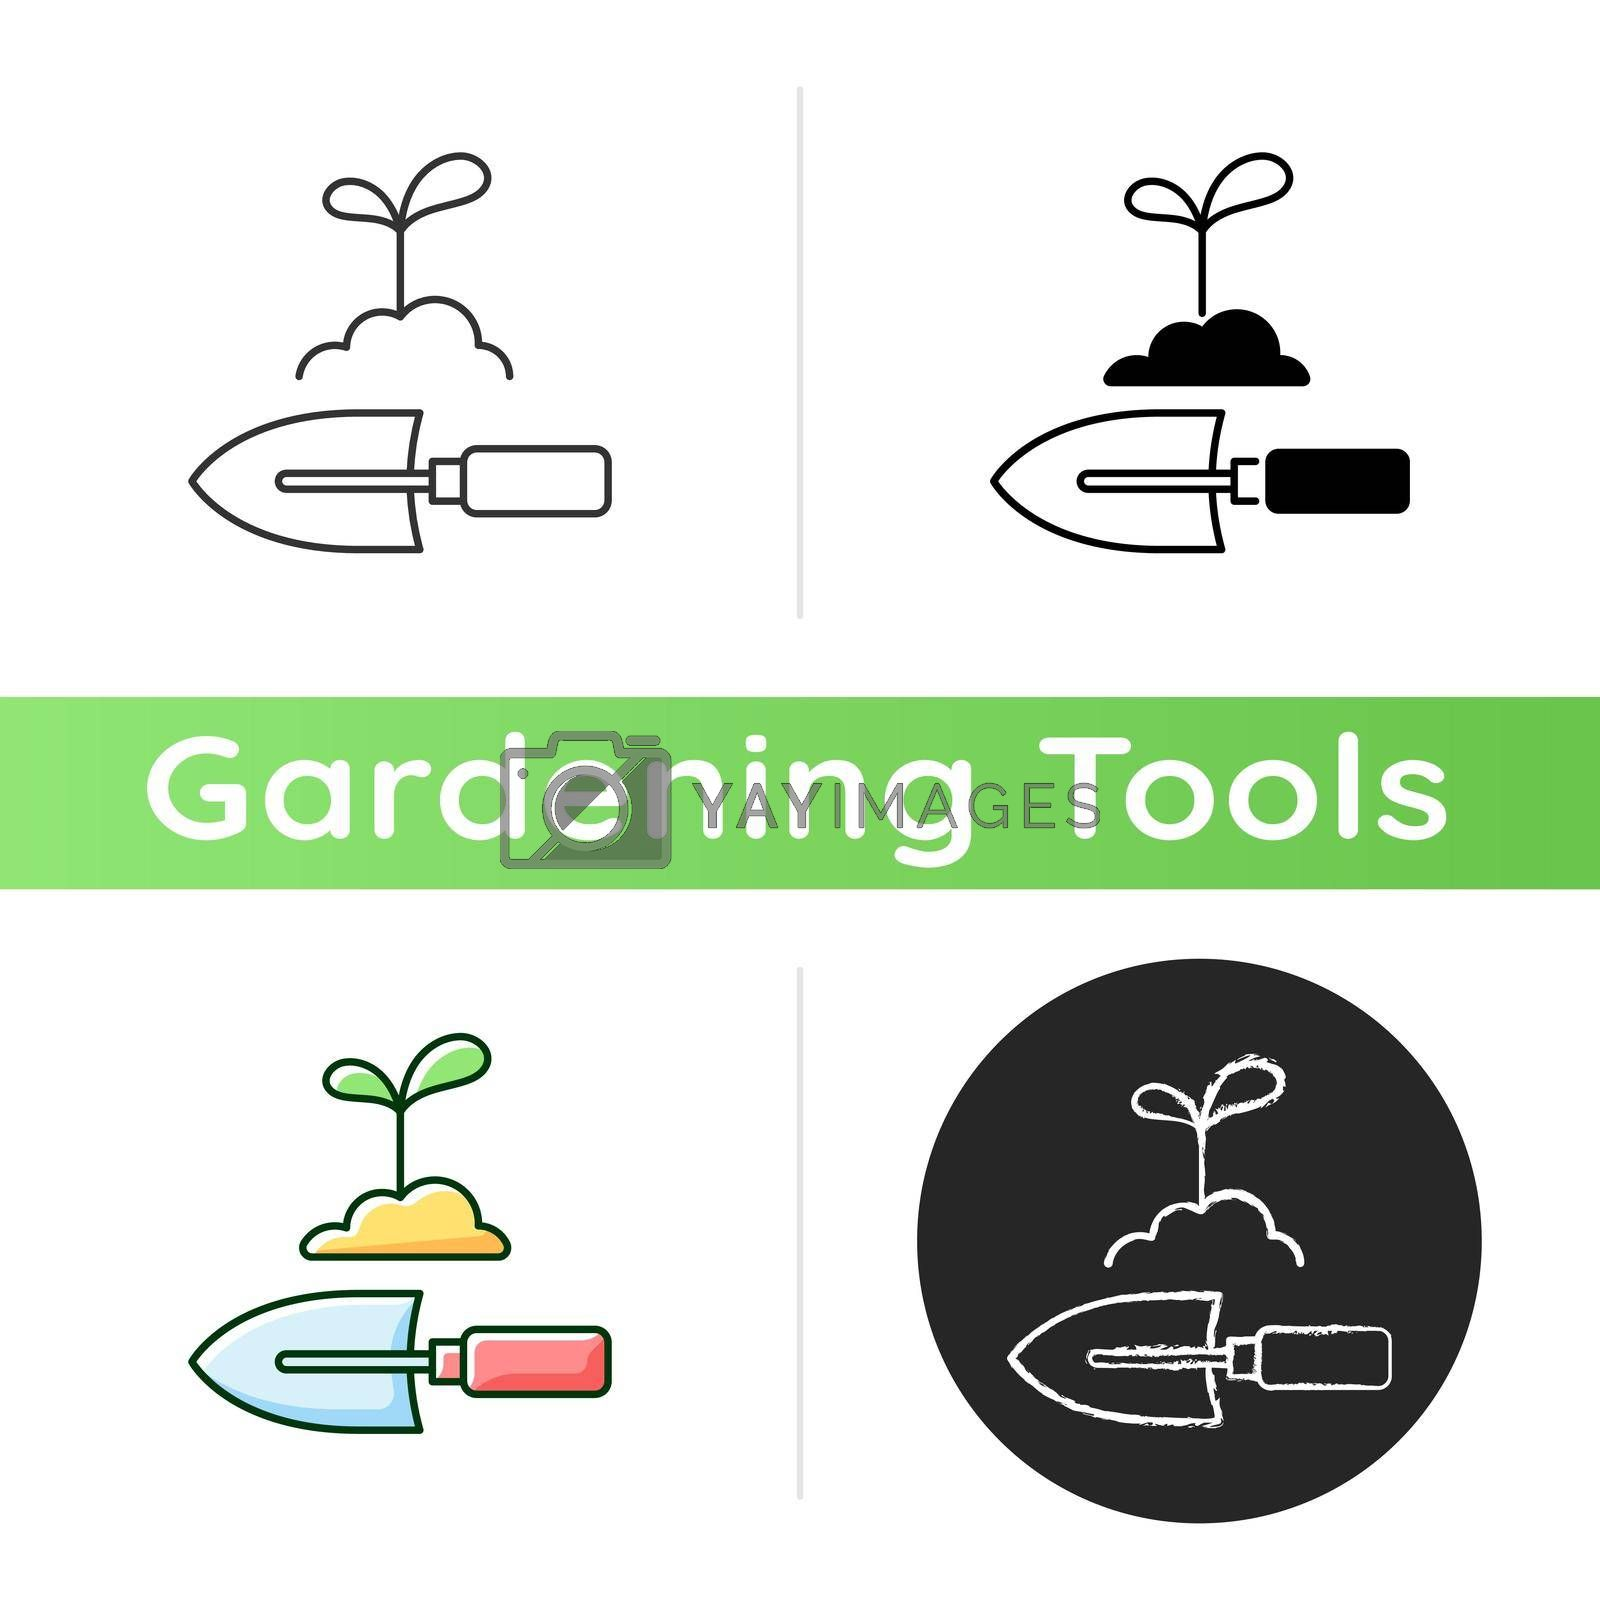 Hand trowel icon. Digging small holes. Smoothing soil. Hand shovel. Spring bulb, perennial planting. Transplanting seedlings. Linear black and RGB color styles. Isolated vector illustrations